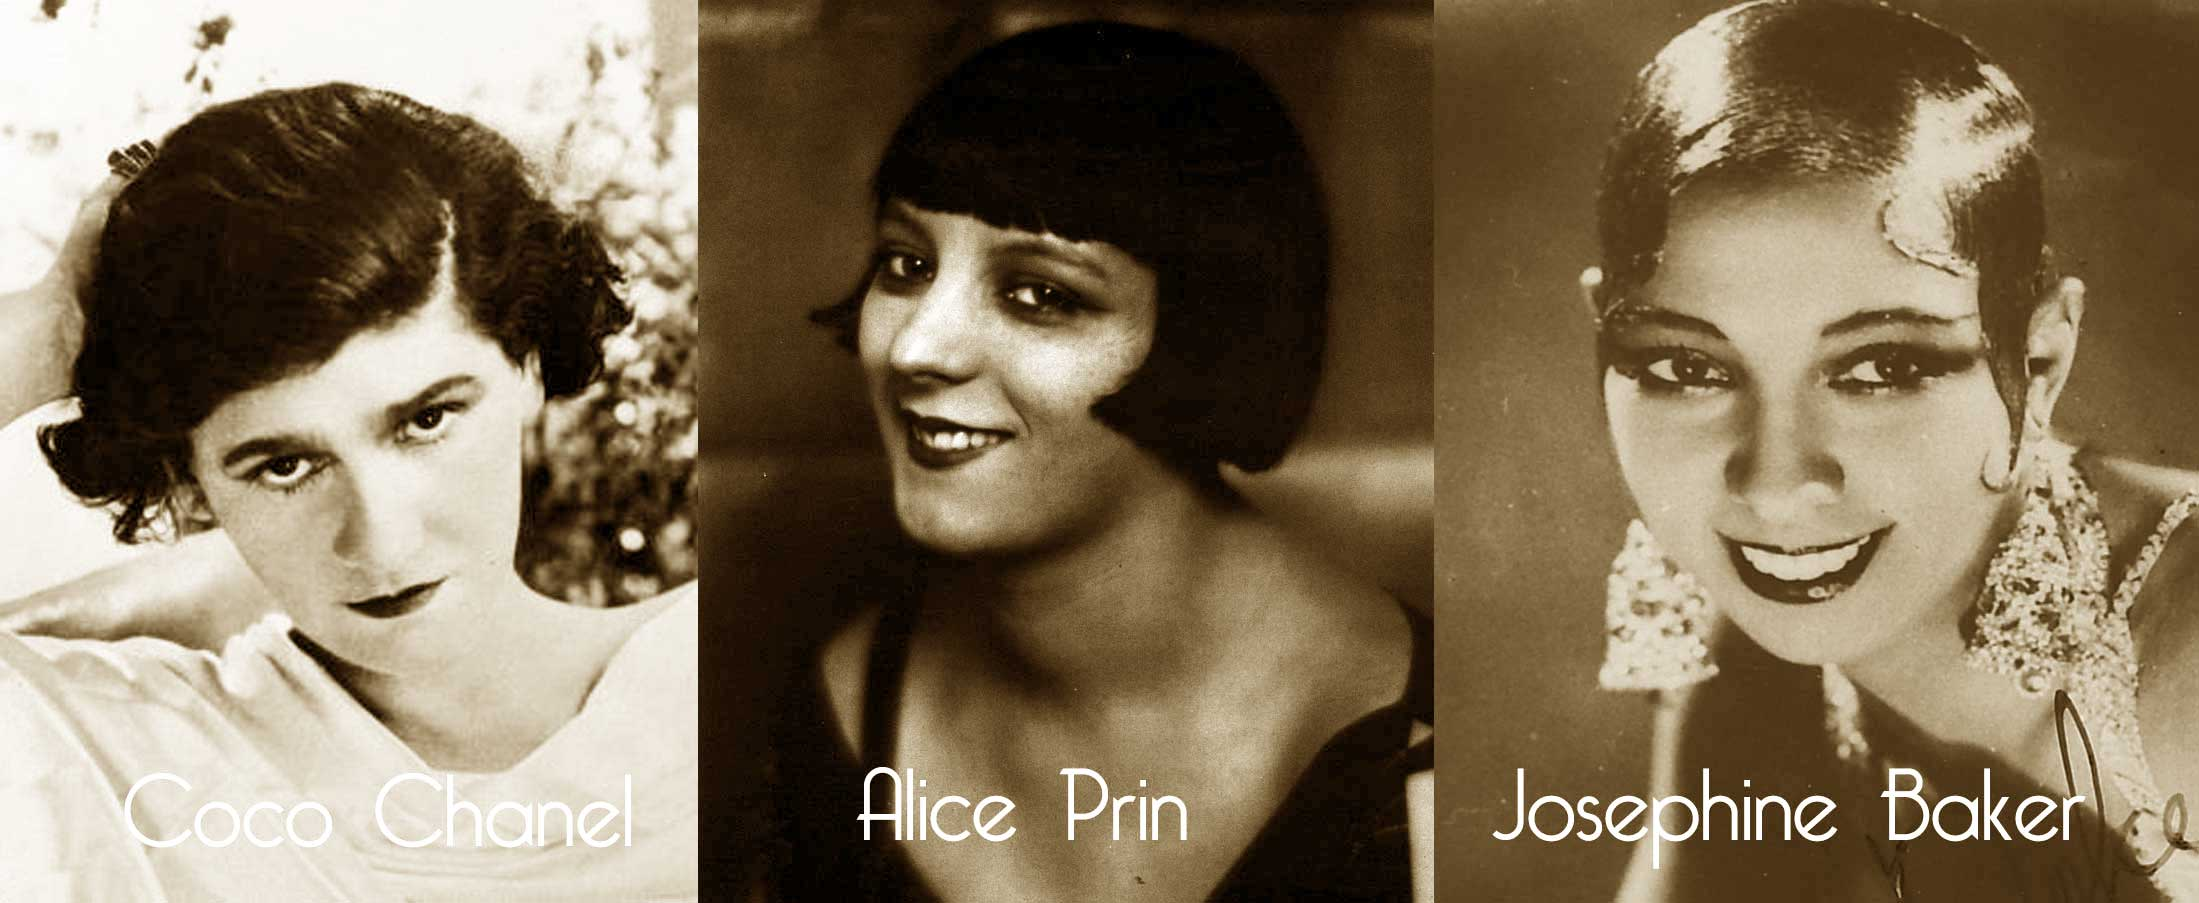 The Beauty Secrets of 1920s Parisian Women | Glamourdaze